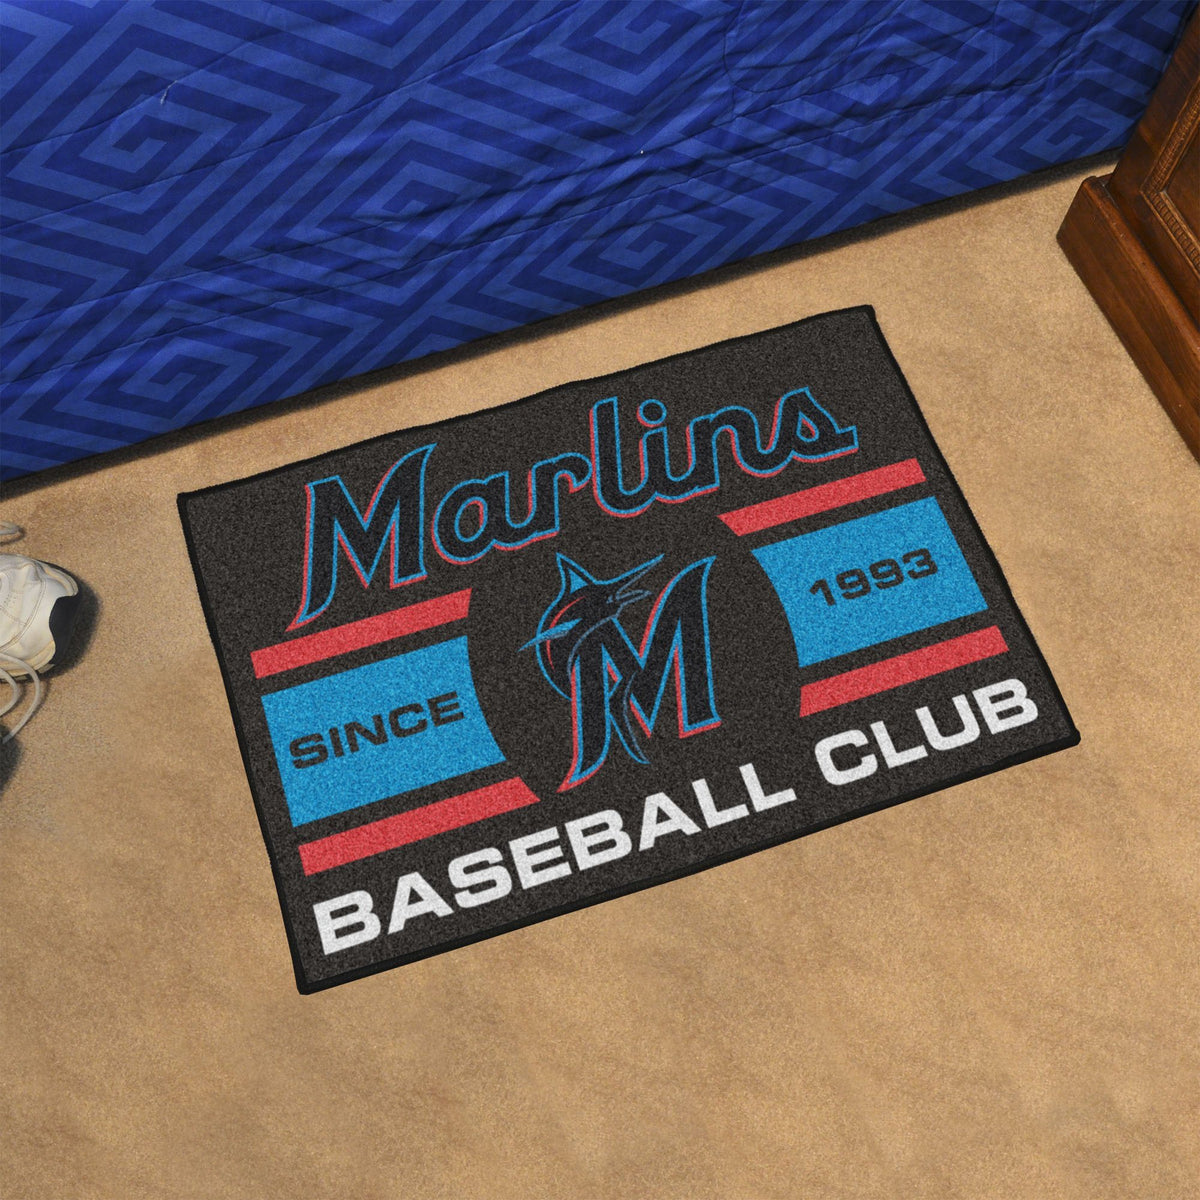 MLB - Uniform Starter Mat MLB Mats, Rectangular Mats, Uniform Starter Mat, MLB, Home Fan Mats Miami Marlins